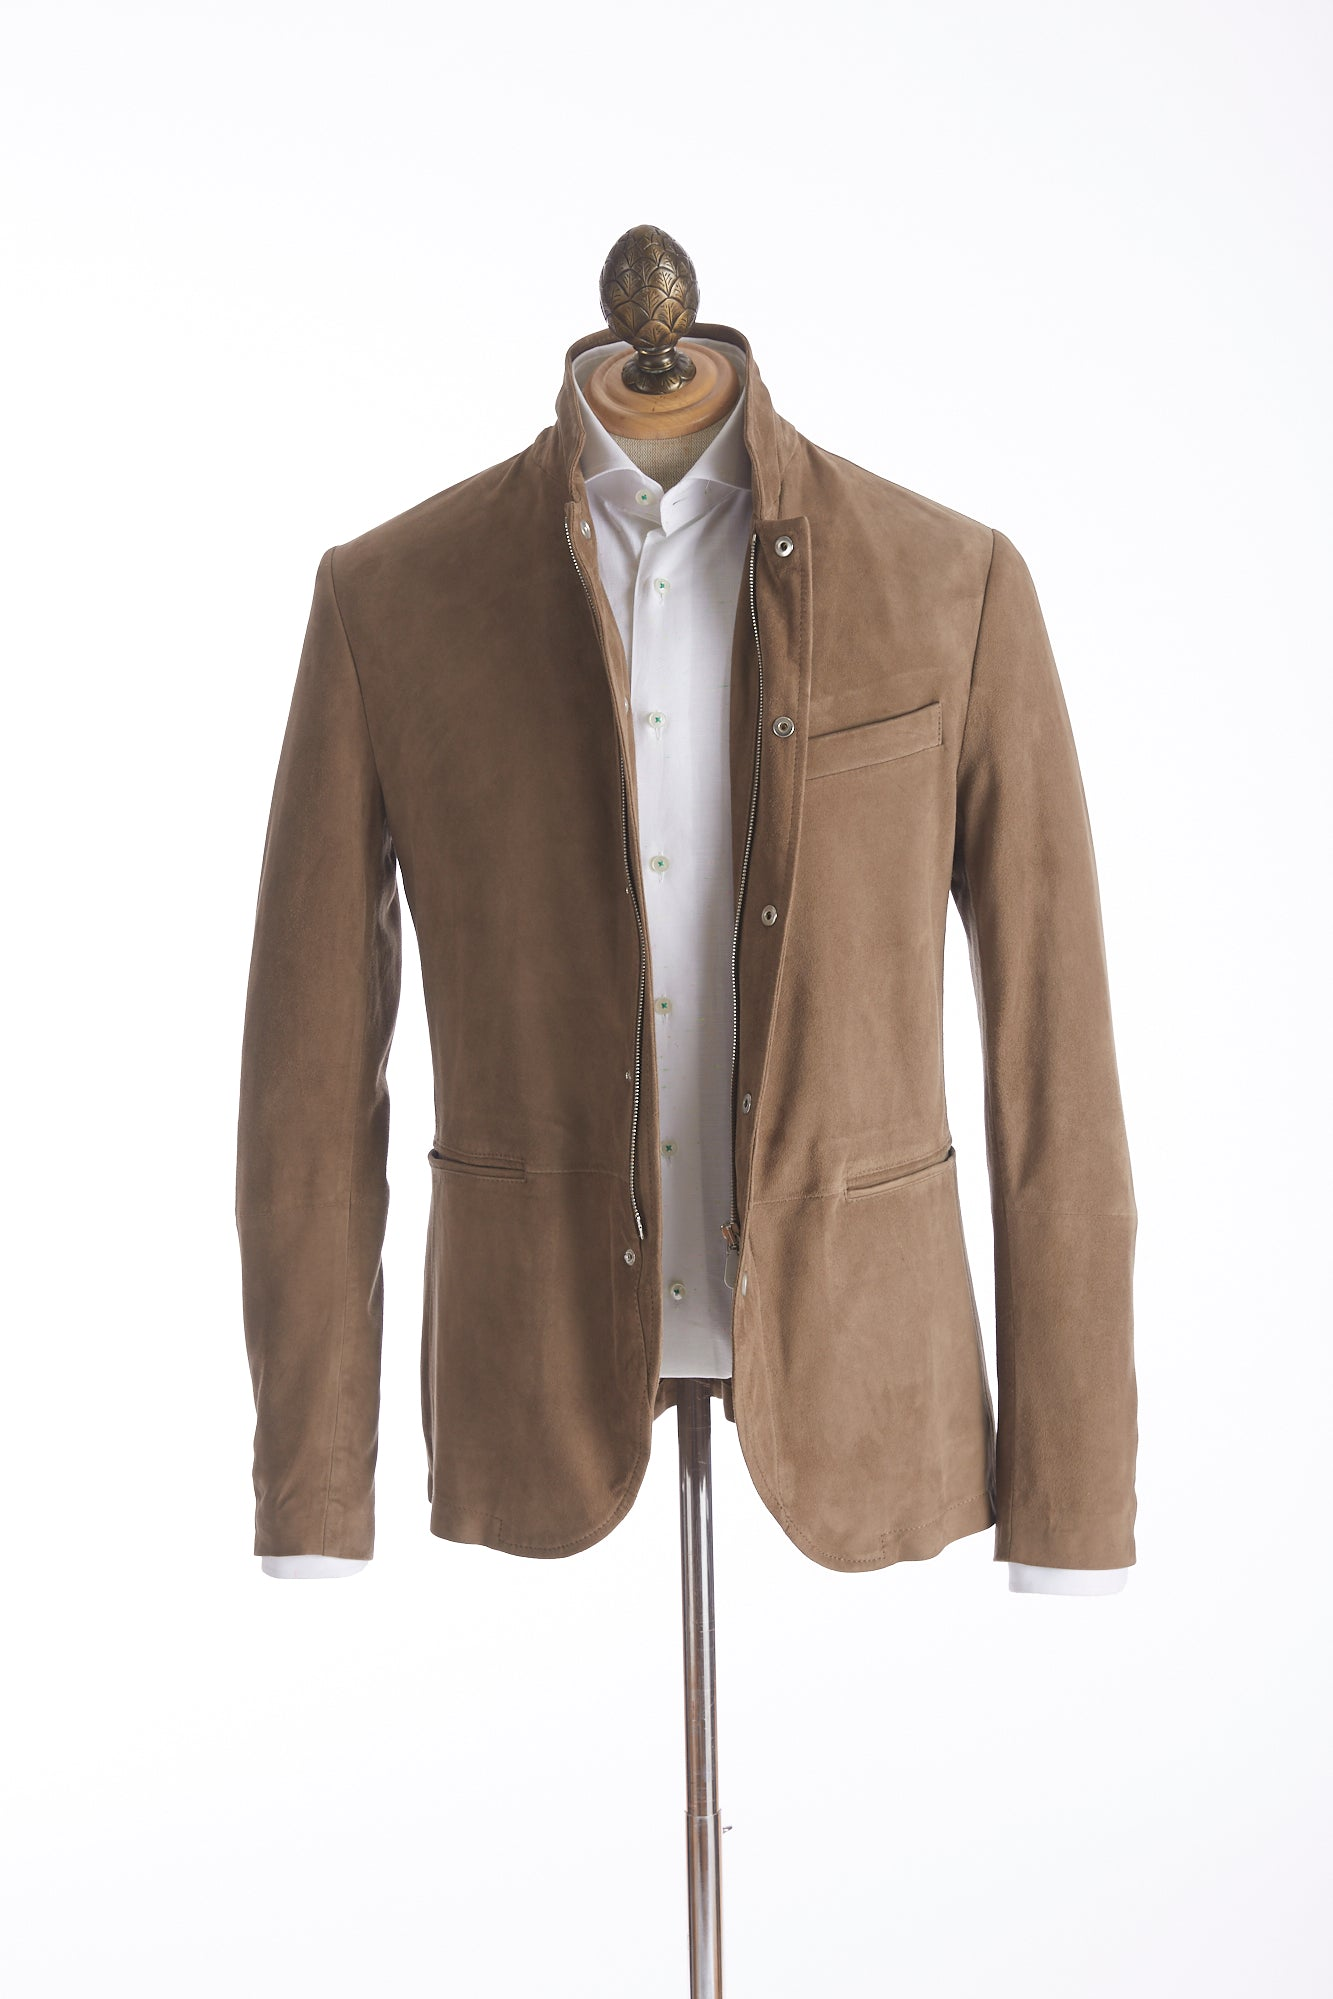 Eleventy Coffee Suede Leather Jacket - Outerwear - Eleventy - LALONDE's